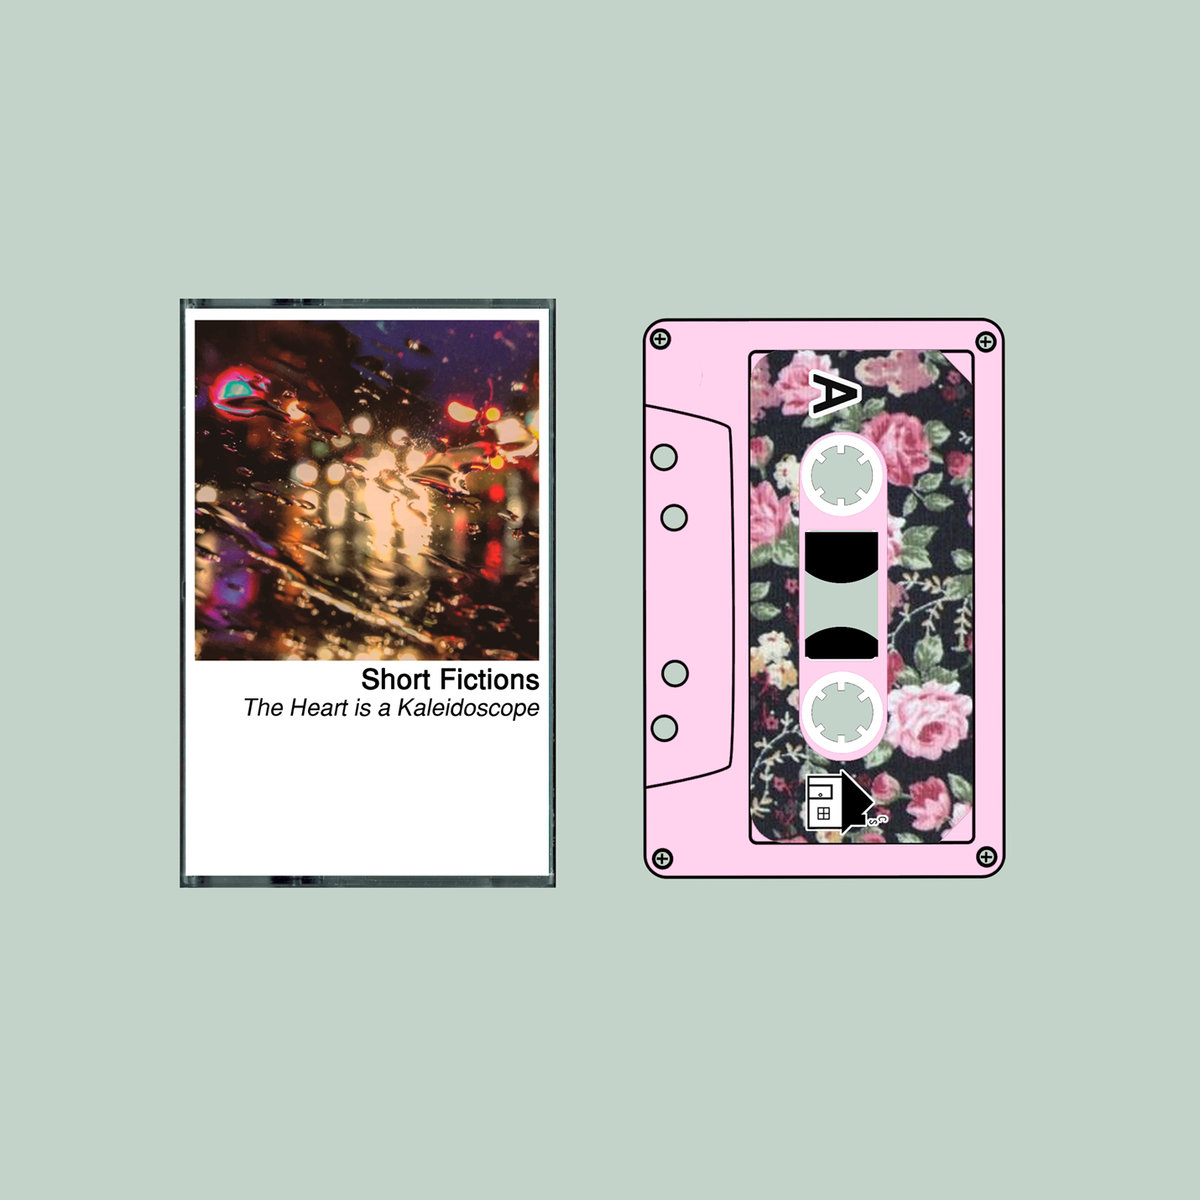 [SOLD] Short Fictions - The Heart is a Kaleidoscope (Crafted Sounds)